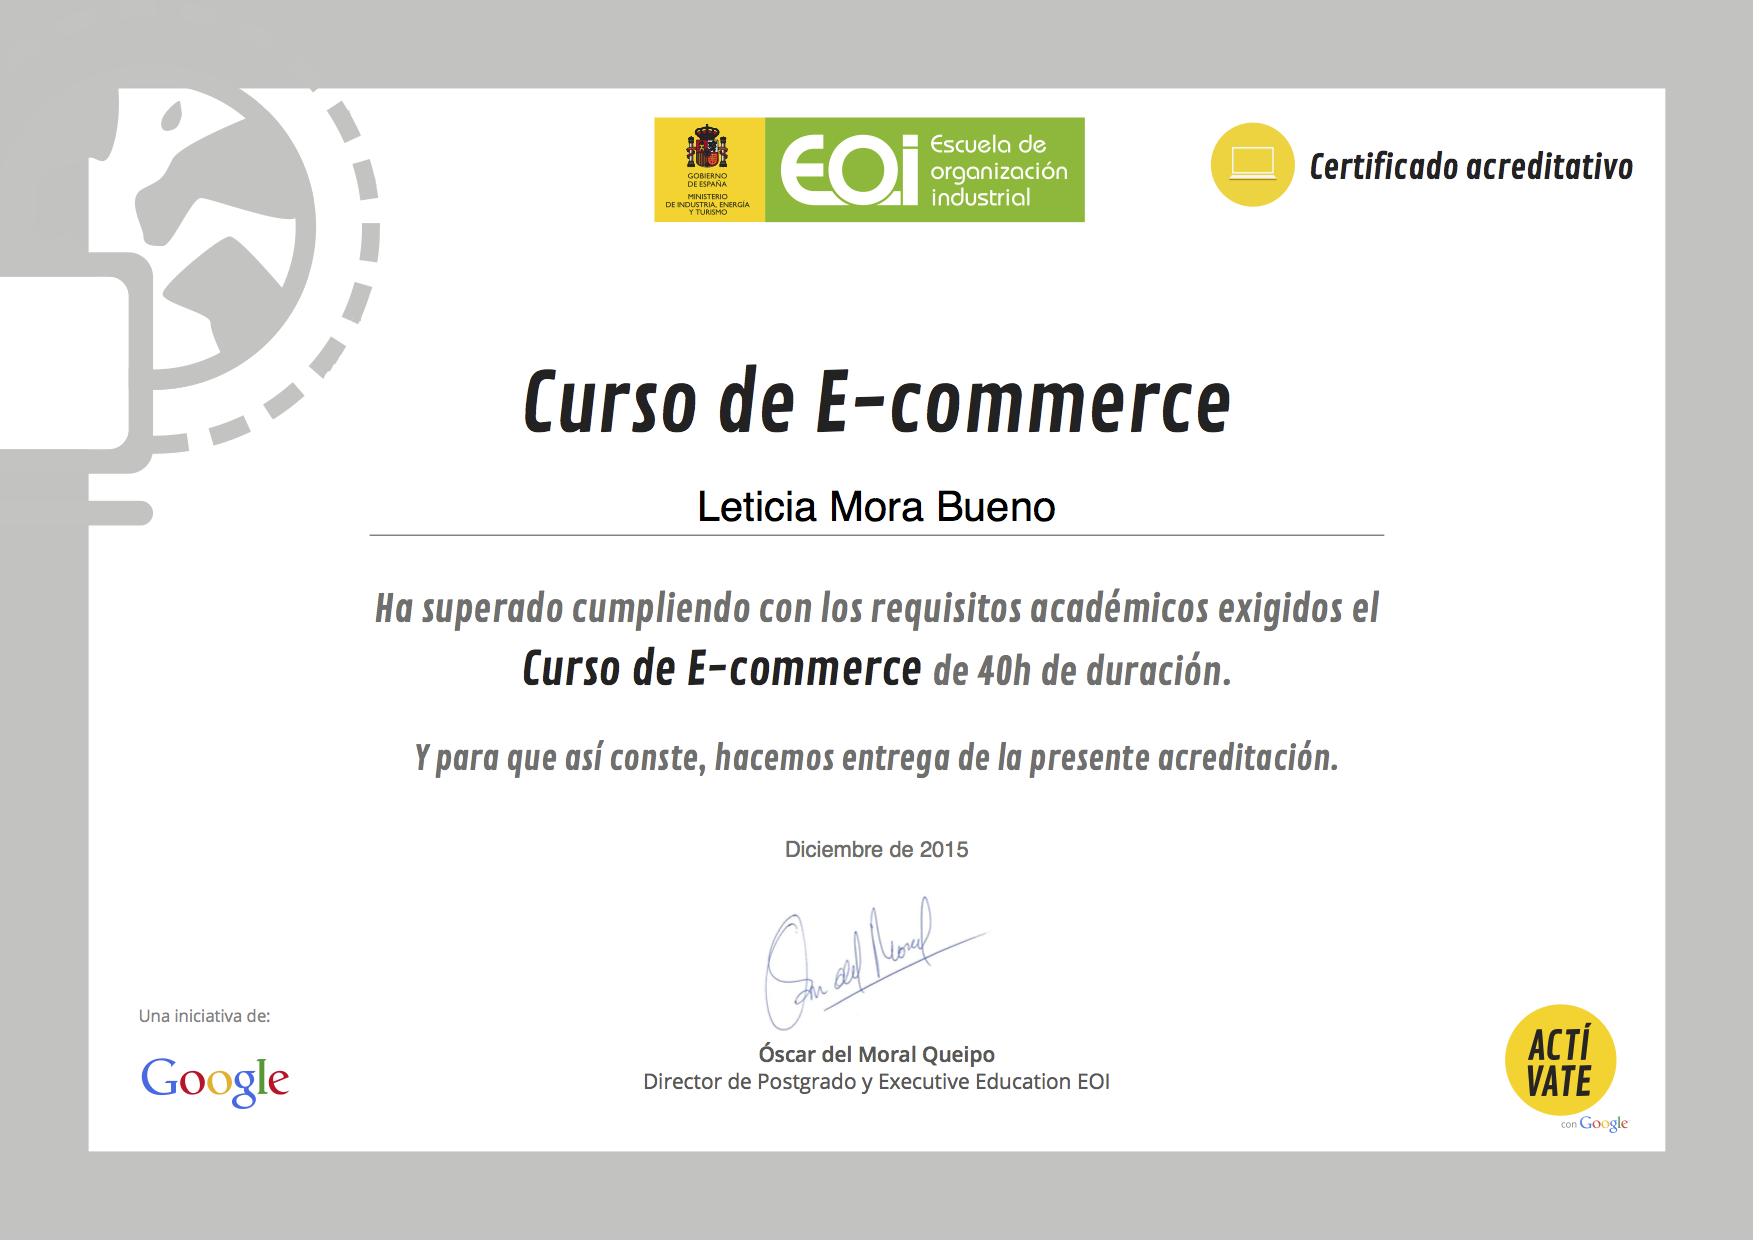 Curso de e-commerce EOI